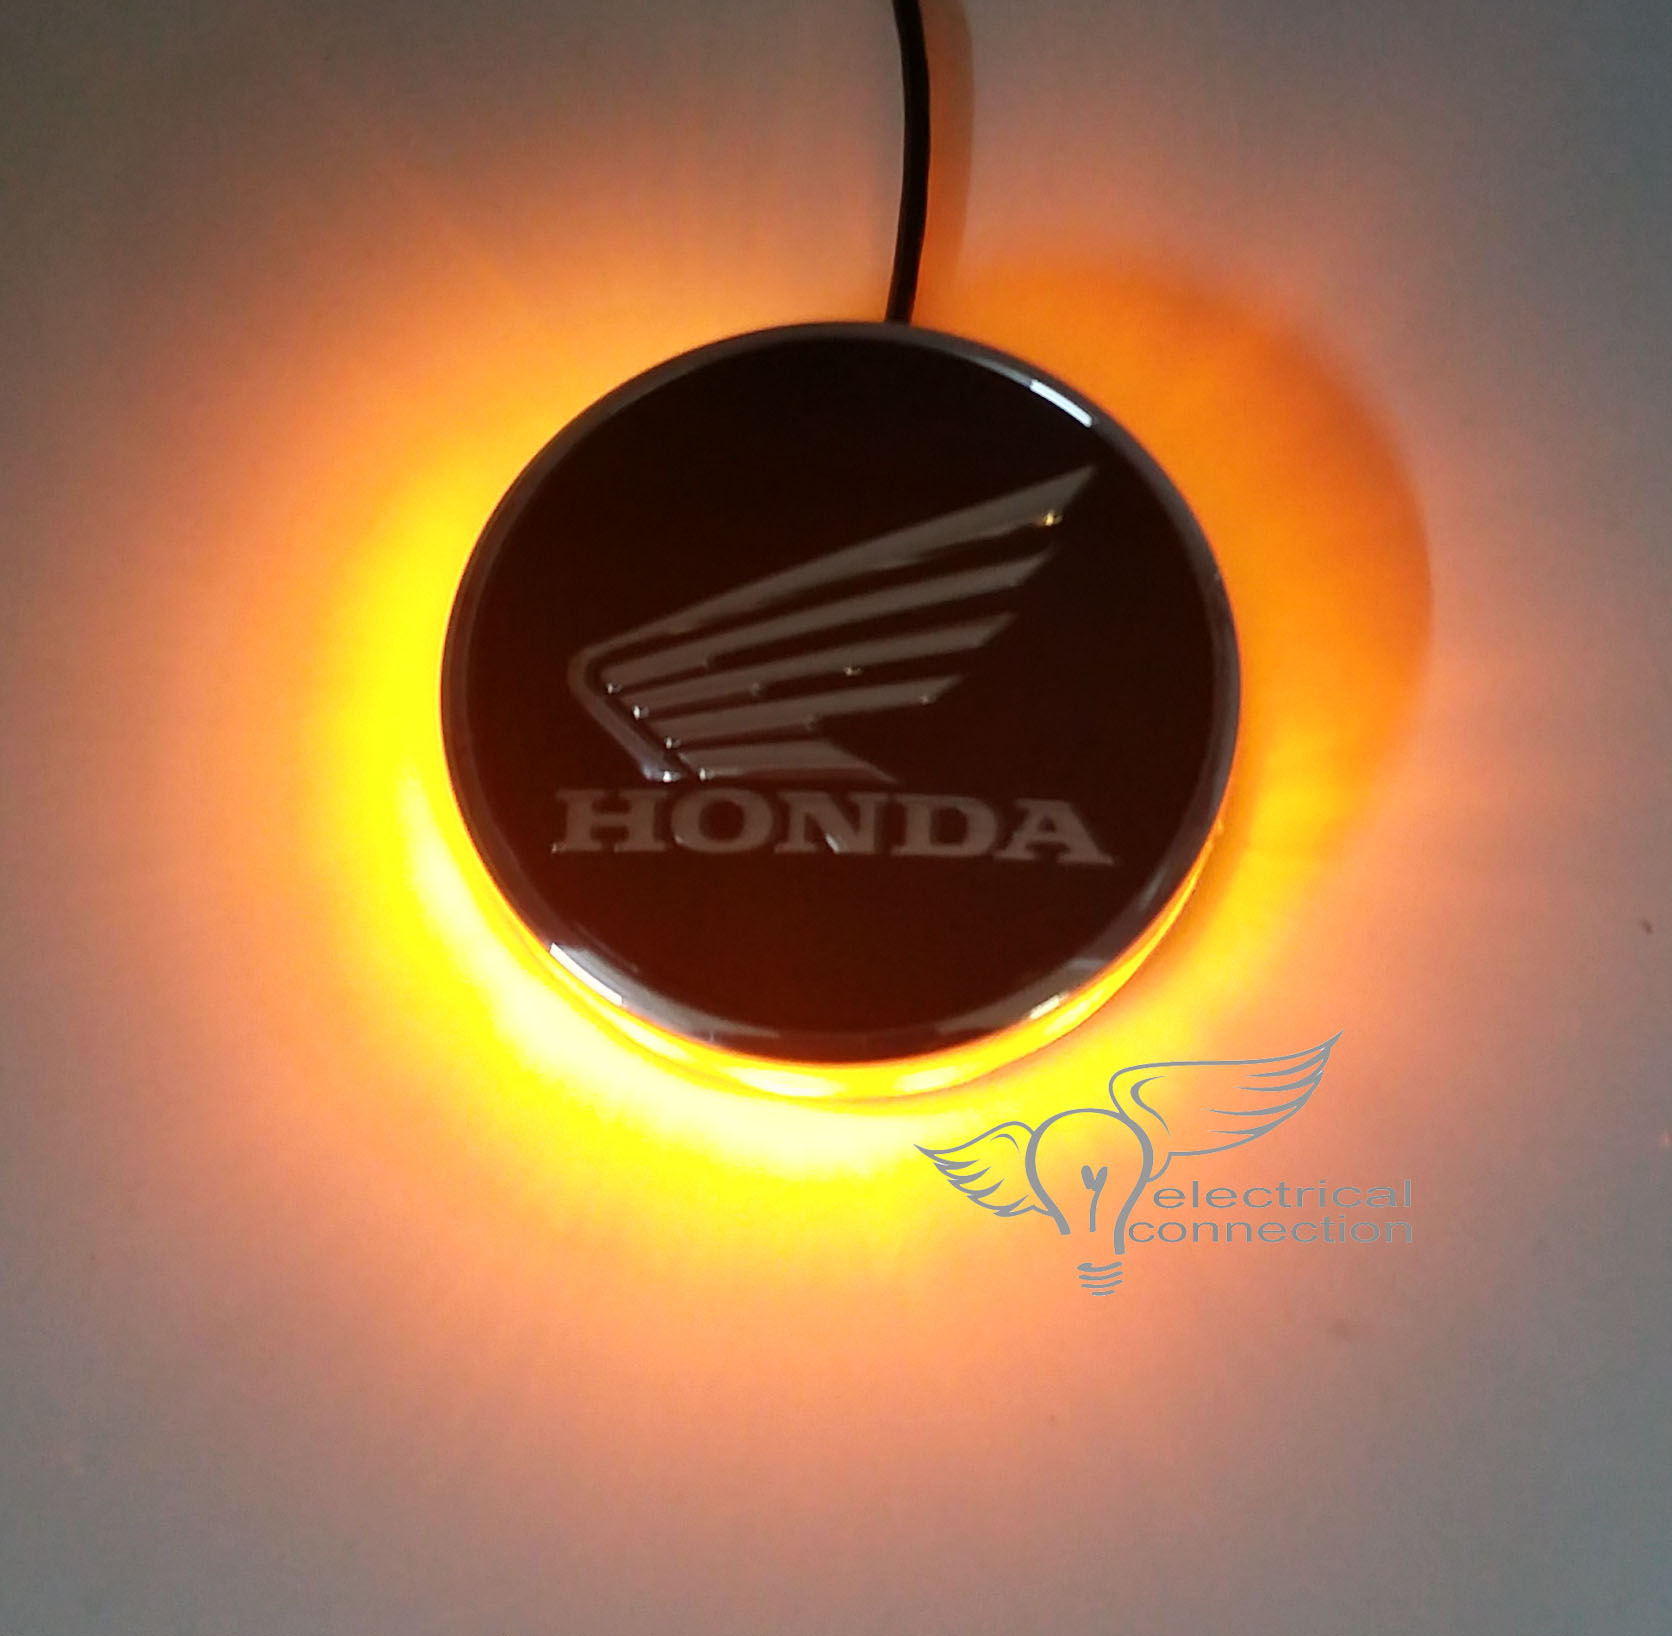 Honda Roundel Emblem Illumination Kit Electrical Connection